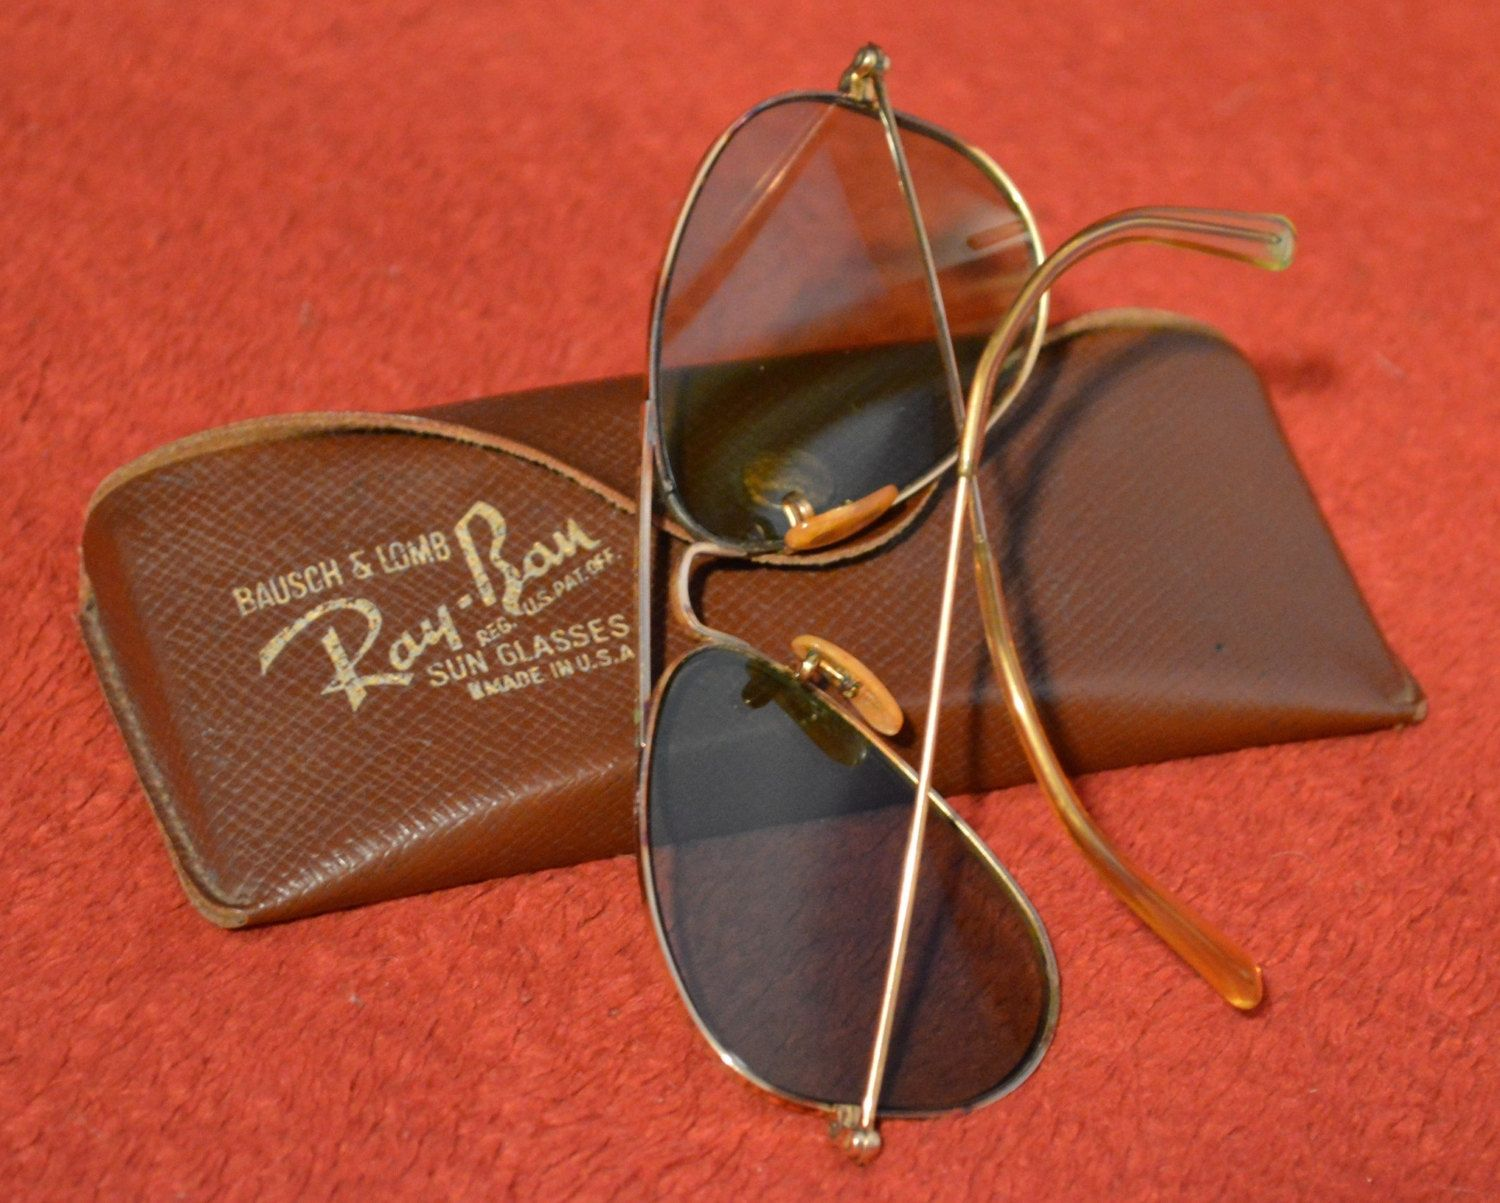 a1dd56b4588 Vintage Bausch and Lomb Ray Ban Aviator Sunglasses 12 K GF with Case.   229.99